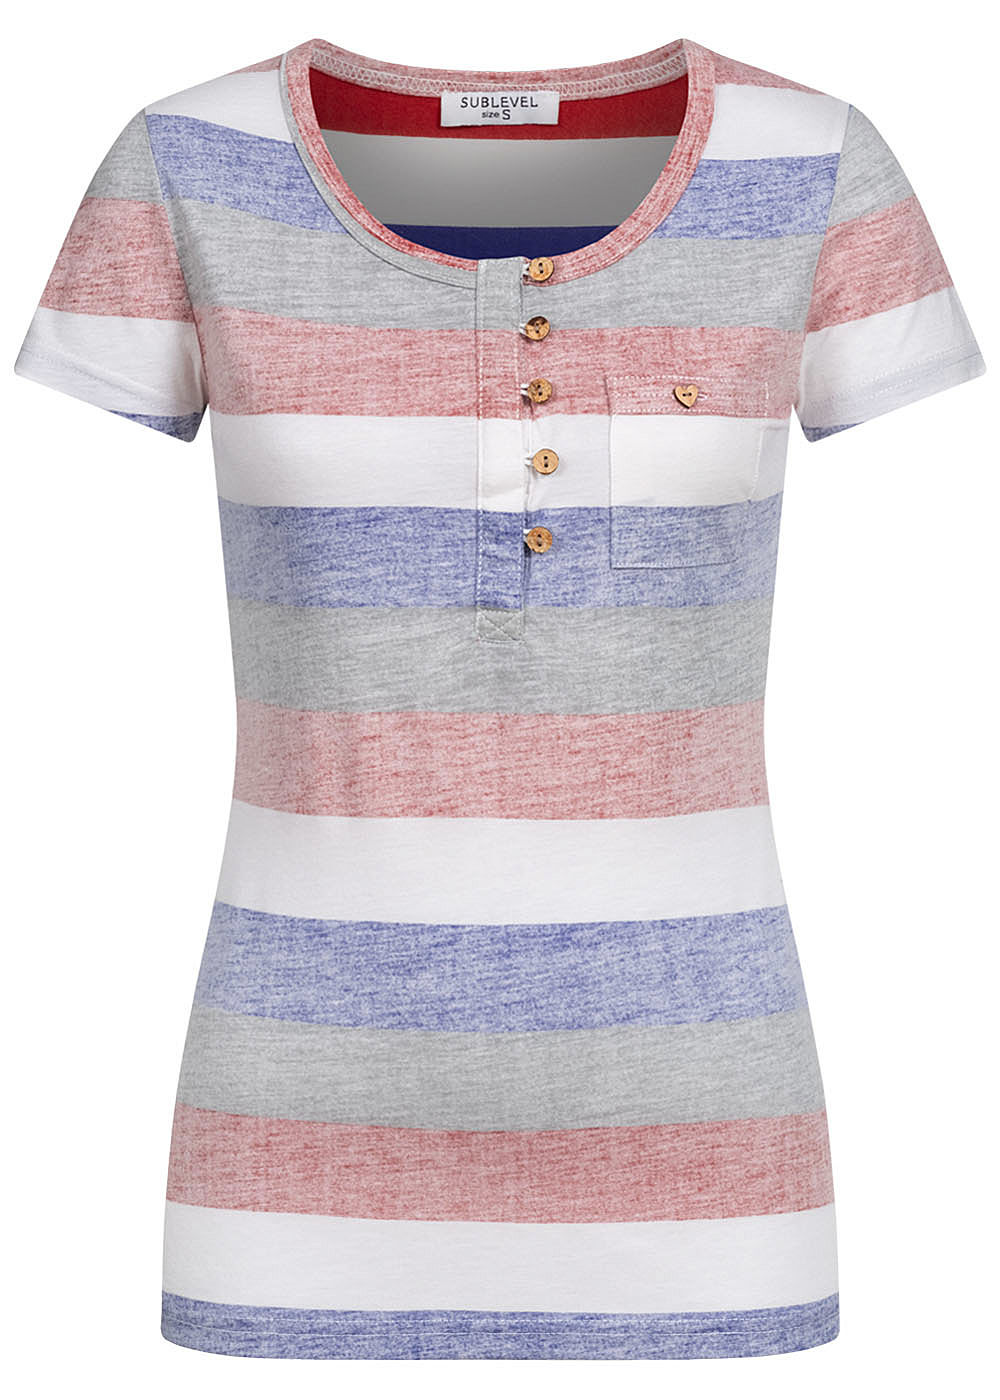 Sublevel Damen Multicolor T-Shirt Streifen Muster mit Knopfleiste cherry rot mc - Art.-Nr.: 20063263